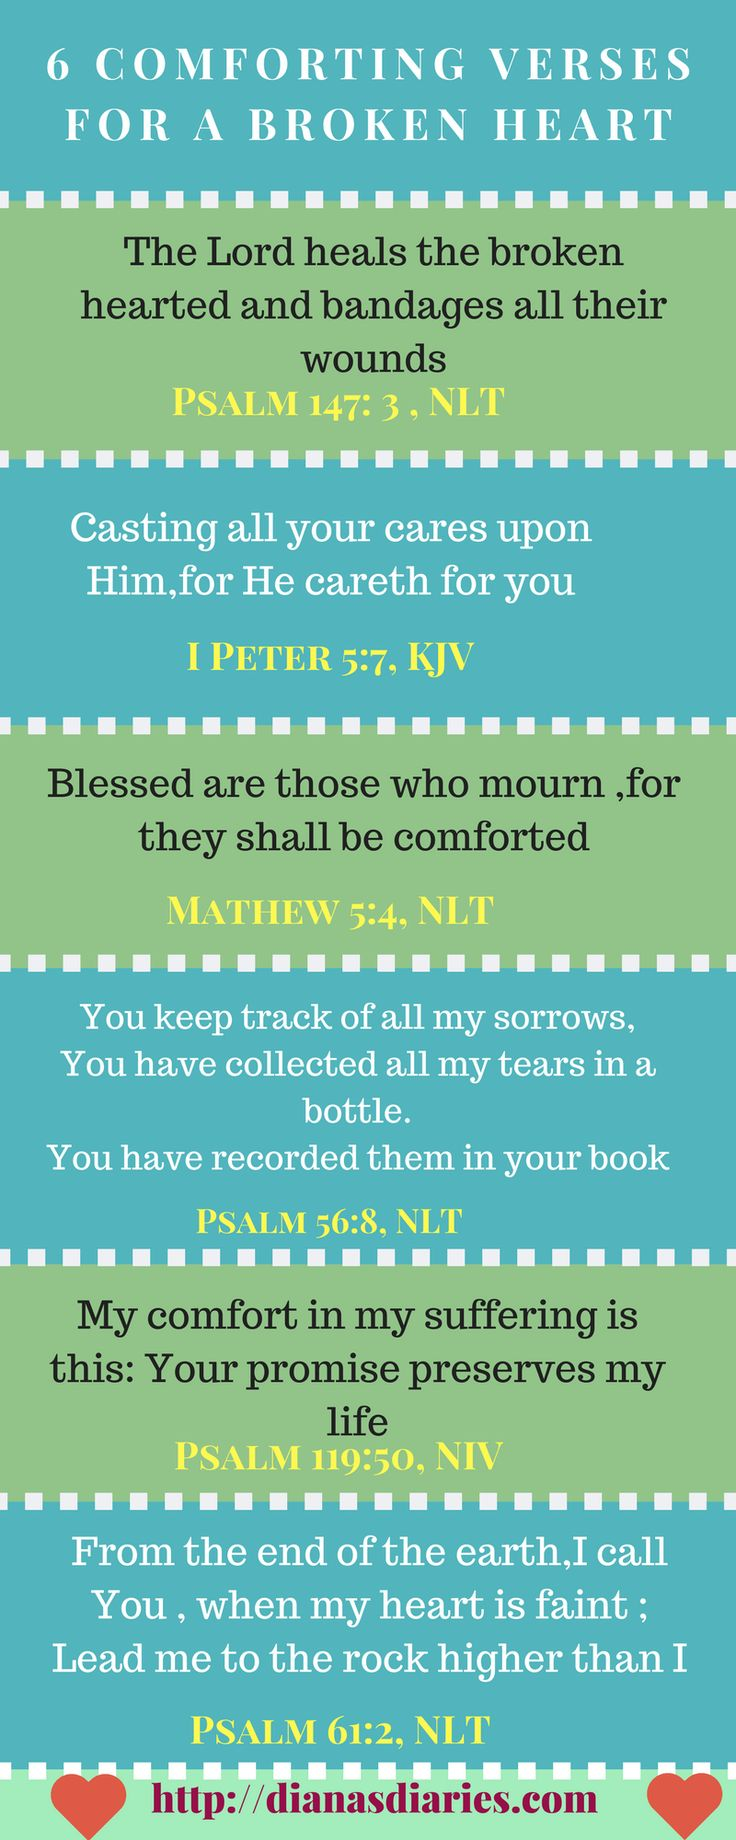 A broken heart can be mend only by a Divine specialist. In a world filled with sorrows and heartaches, we can only look to this Great Physician who promises to weep with us. Here are 6 comforting verses to soothe your broken heart. Shalom, Diana